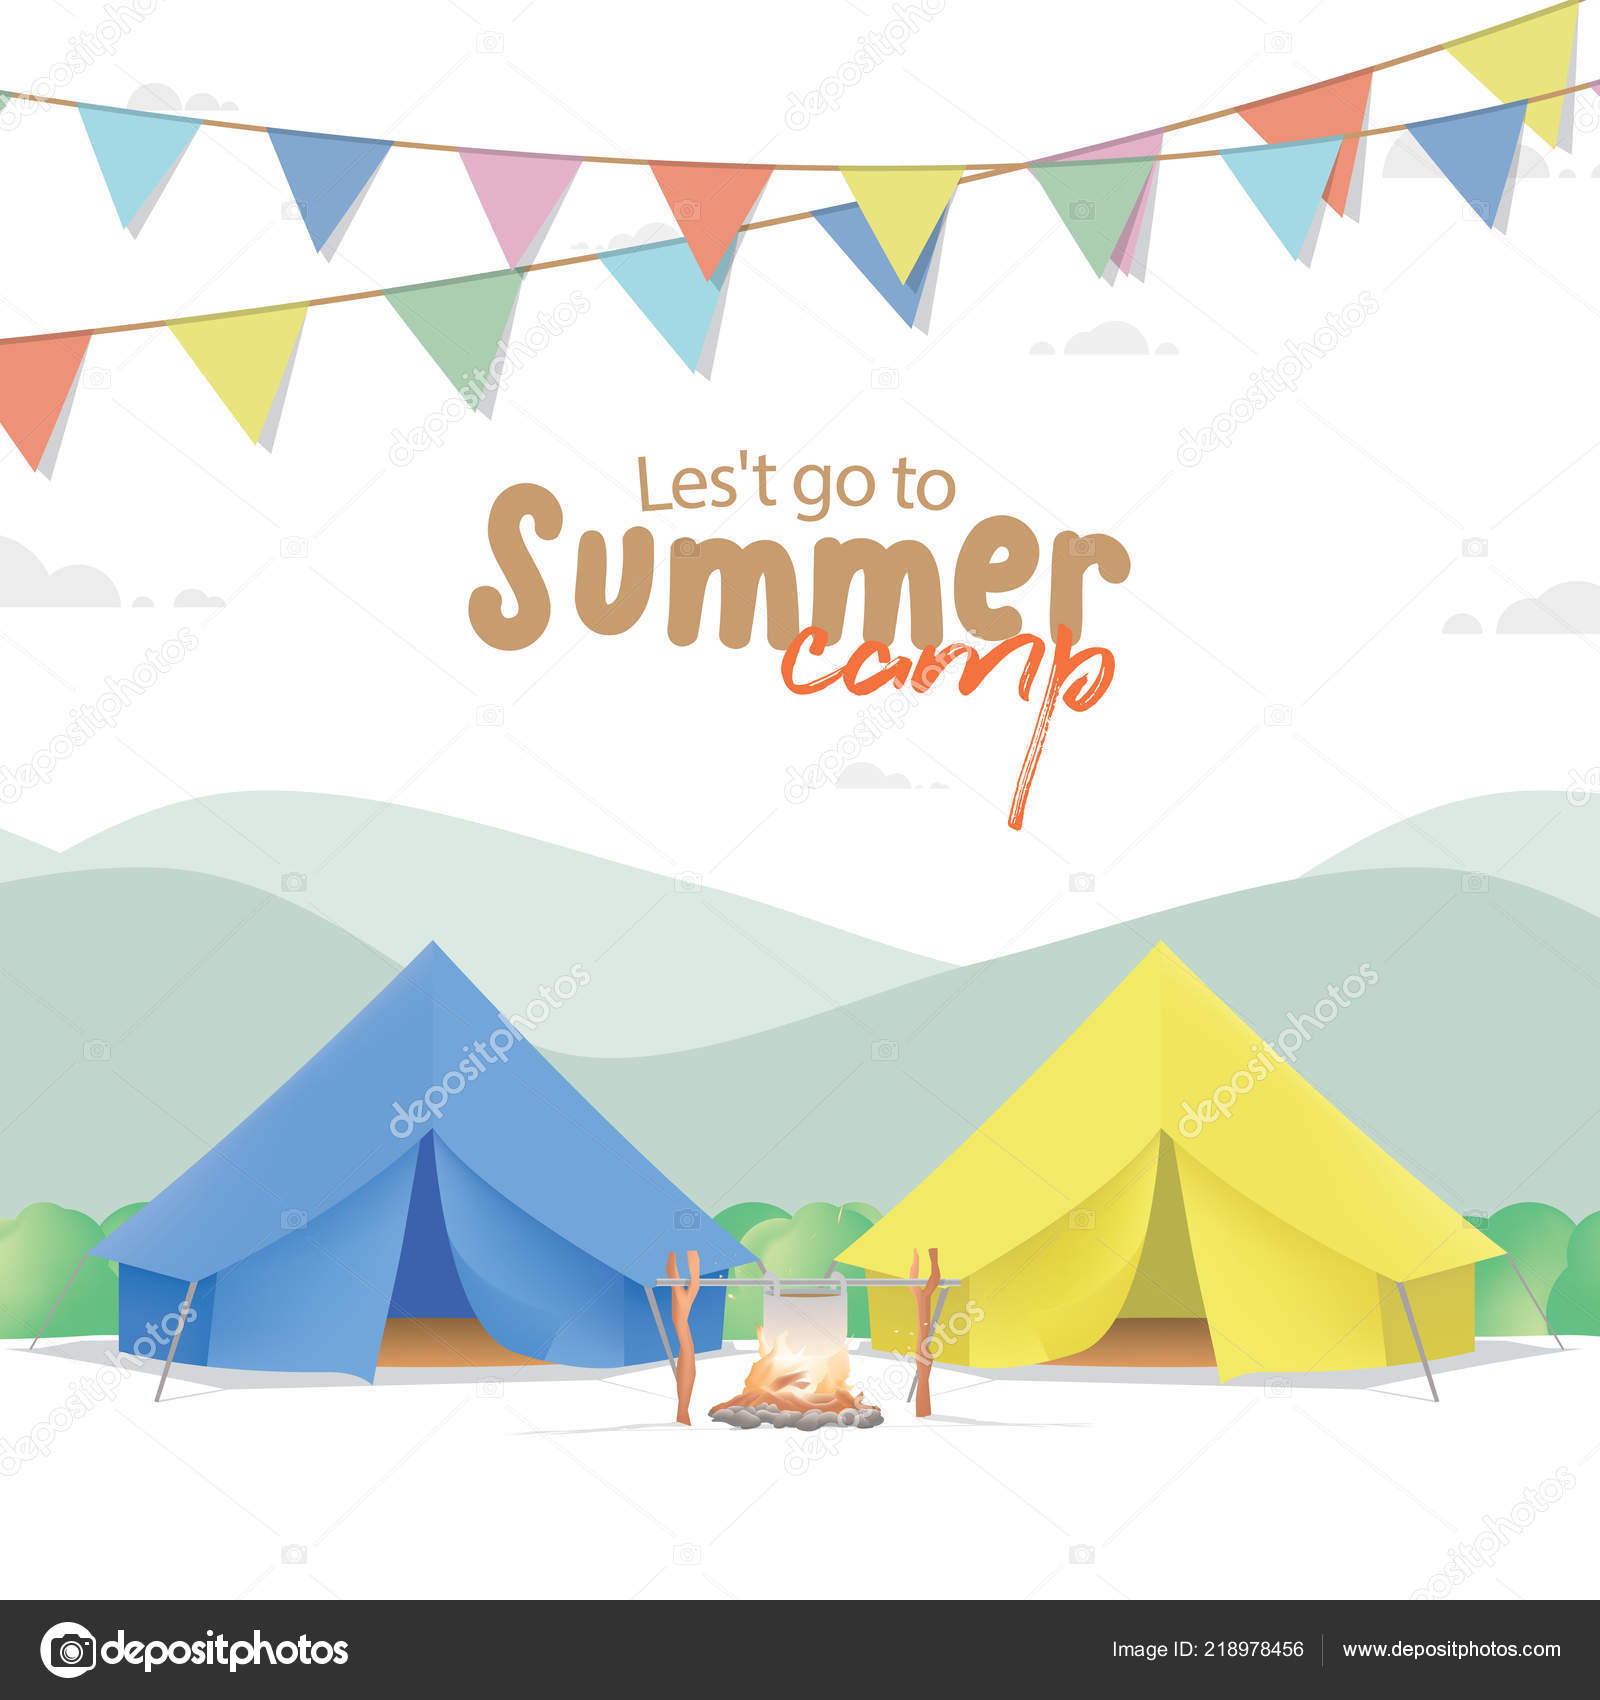 Unduh 420+ Background Banner Camping HD Terbaik